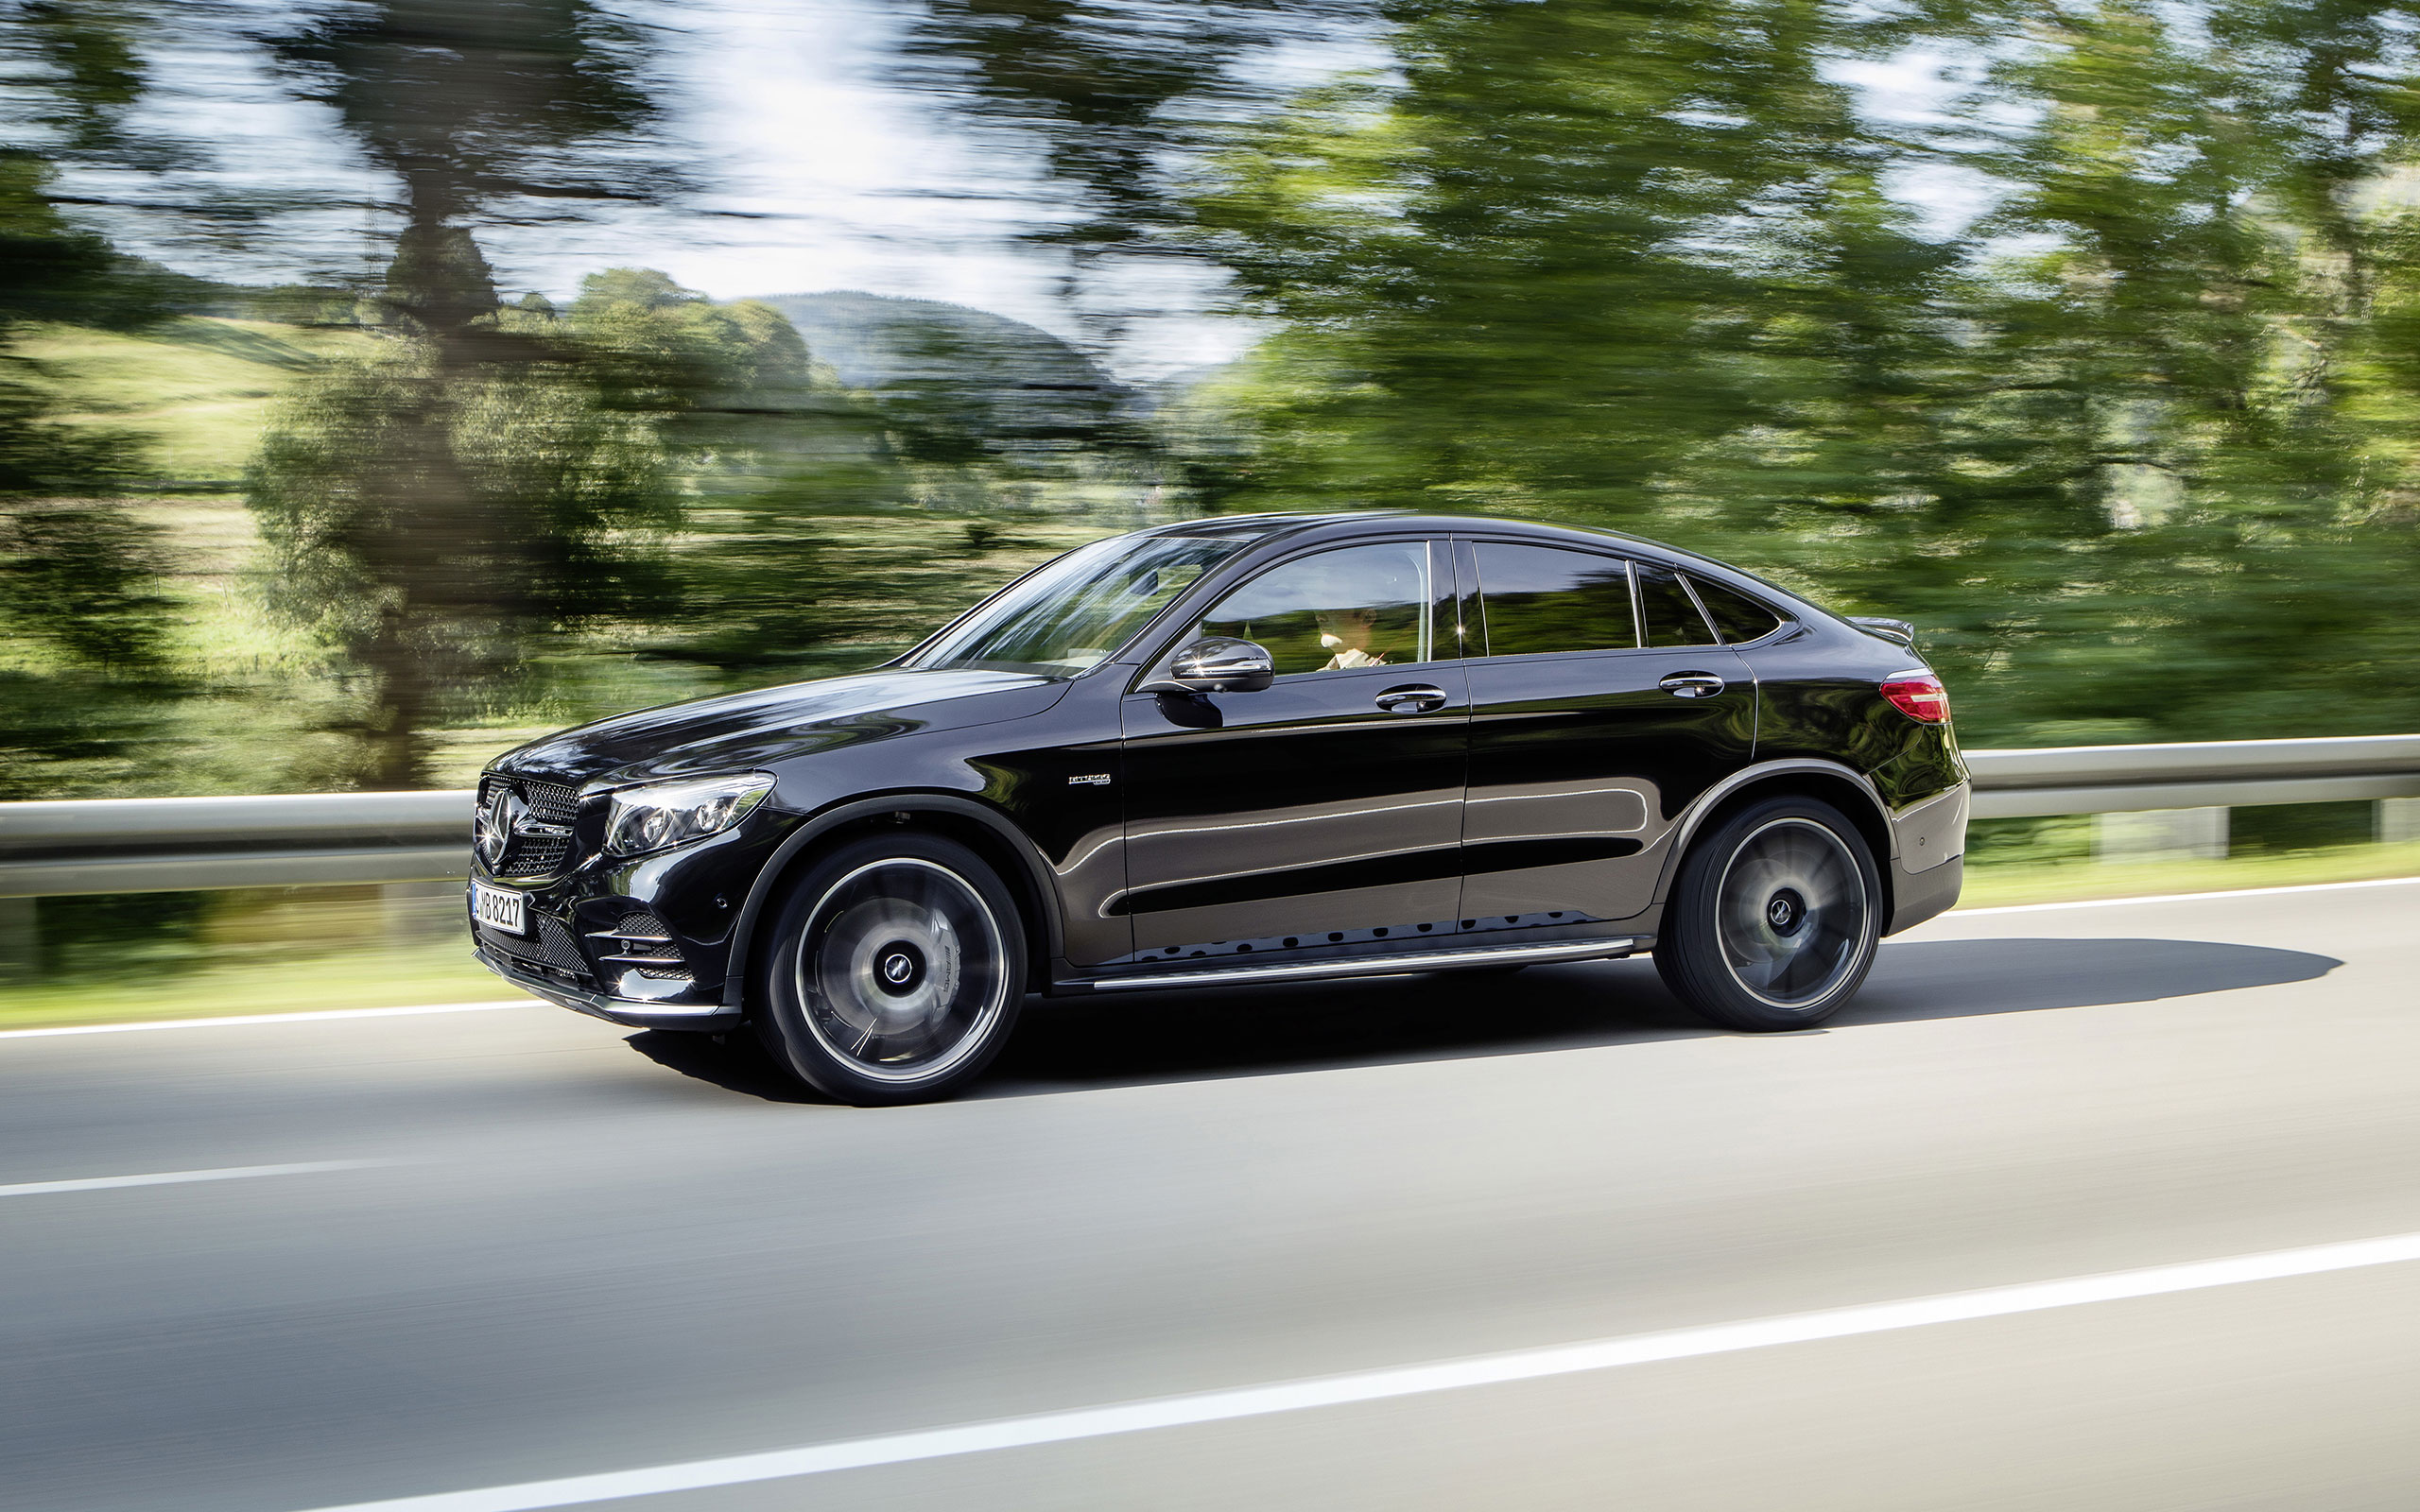 https://assets.mbusa.com/vcm/MB/DigitalAssets/FutureModels/Responsive/2017_GLC43_COUPE/Gallery/2017-GLC-COUPE-GLC43-AMG-FUTURE-GALLERY-002-WR-D.jpg